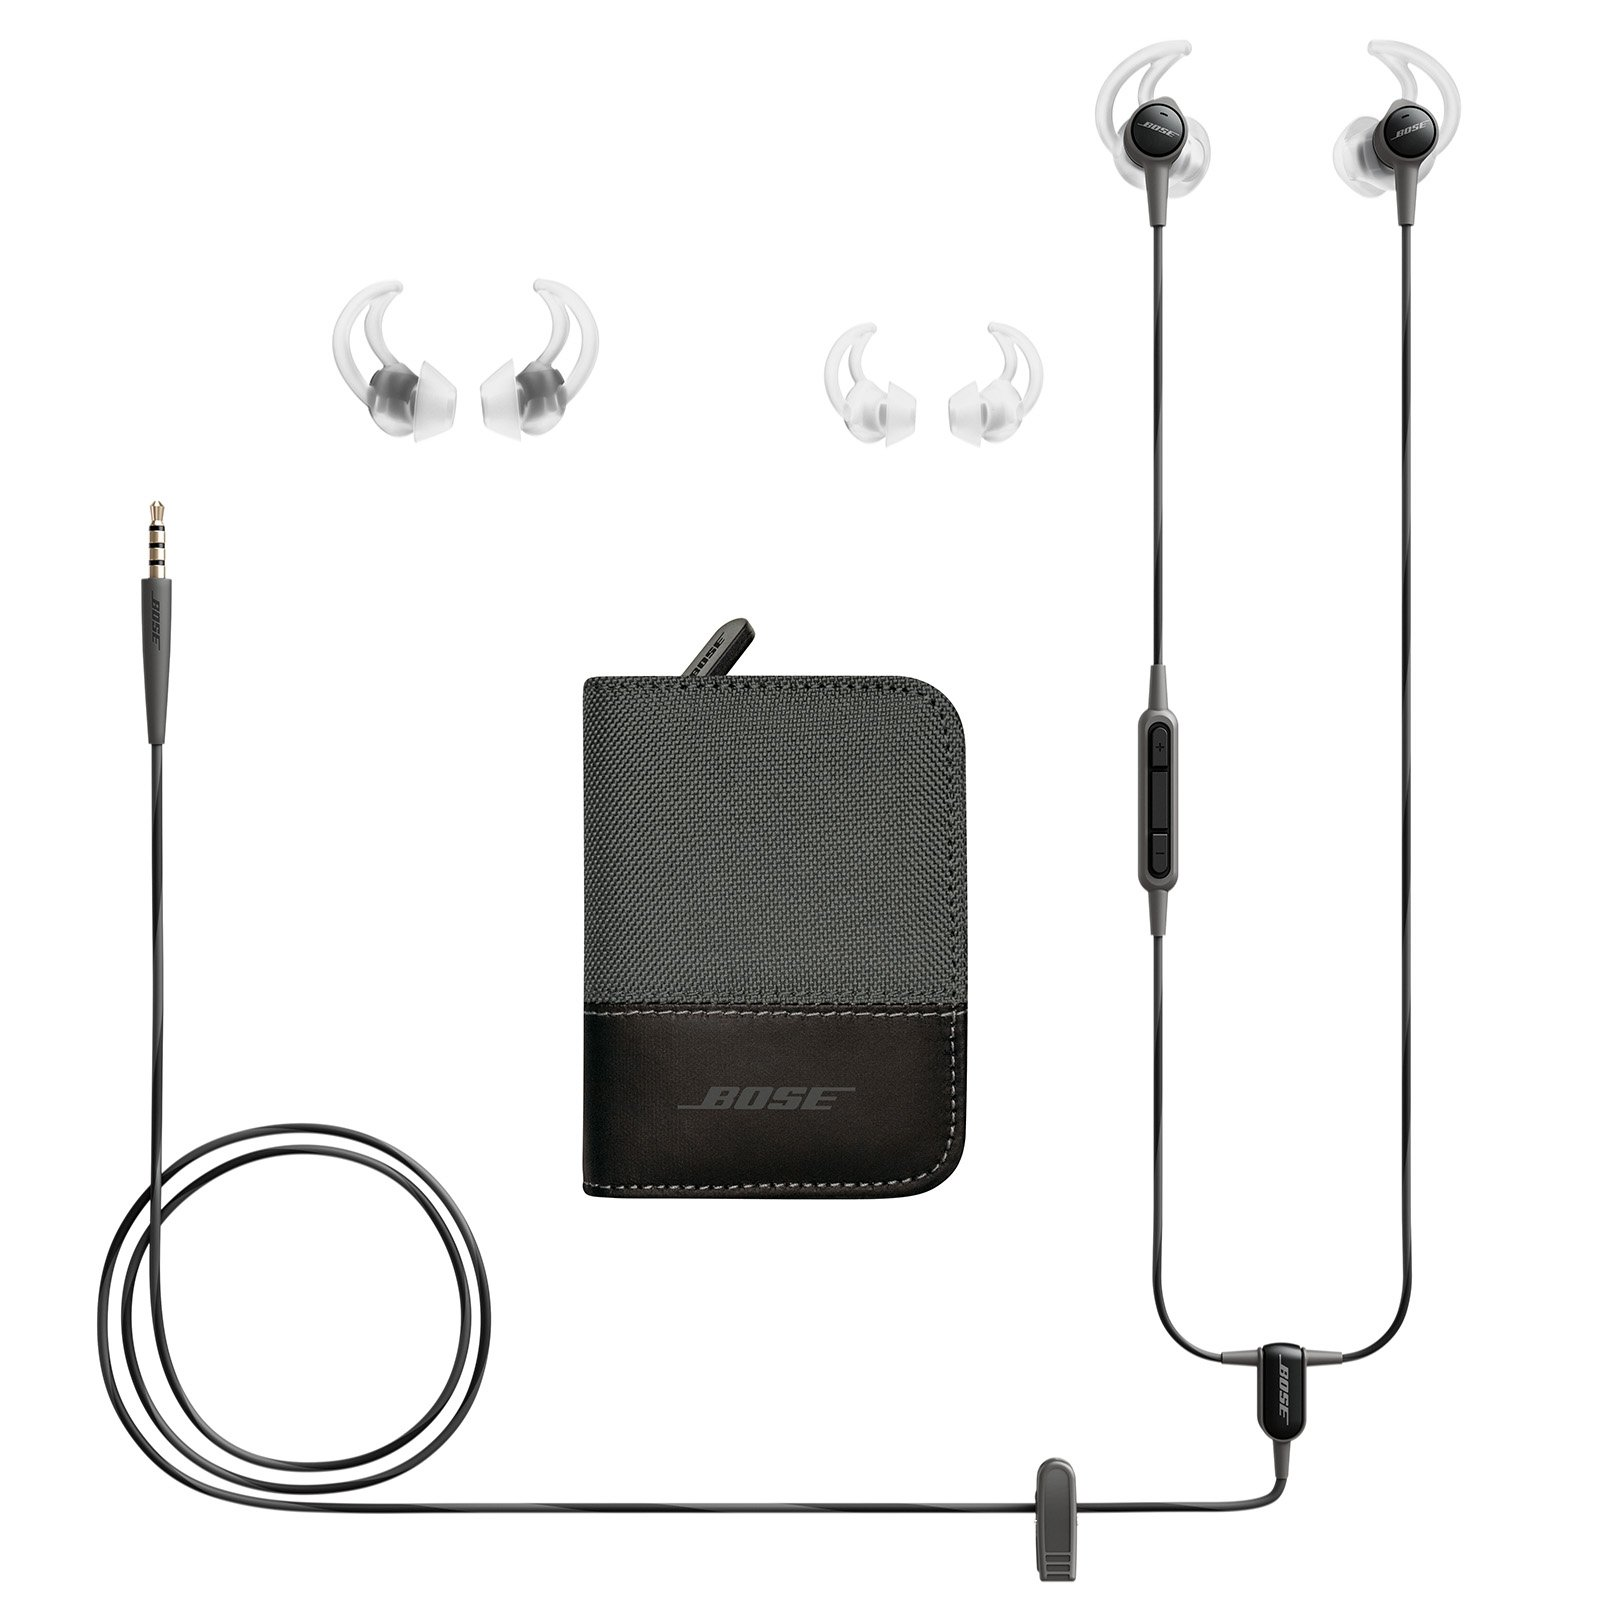 soundtrue ultra in ear headphones apple devices review